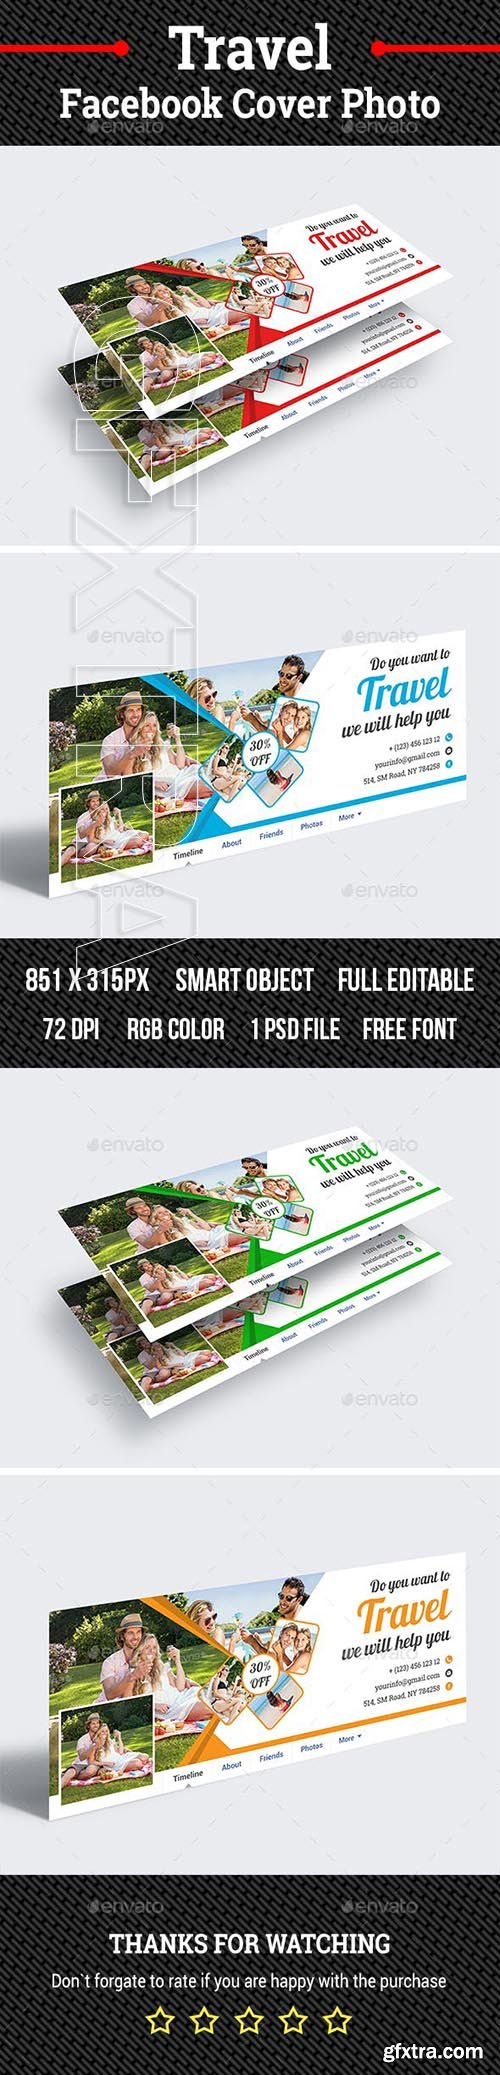 GraphicRiver - Travel Facebook Cover Photo 23116032